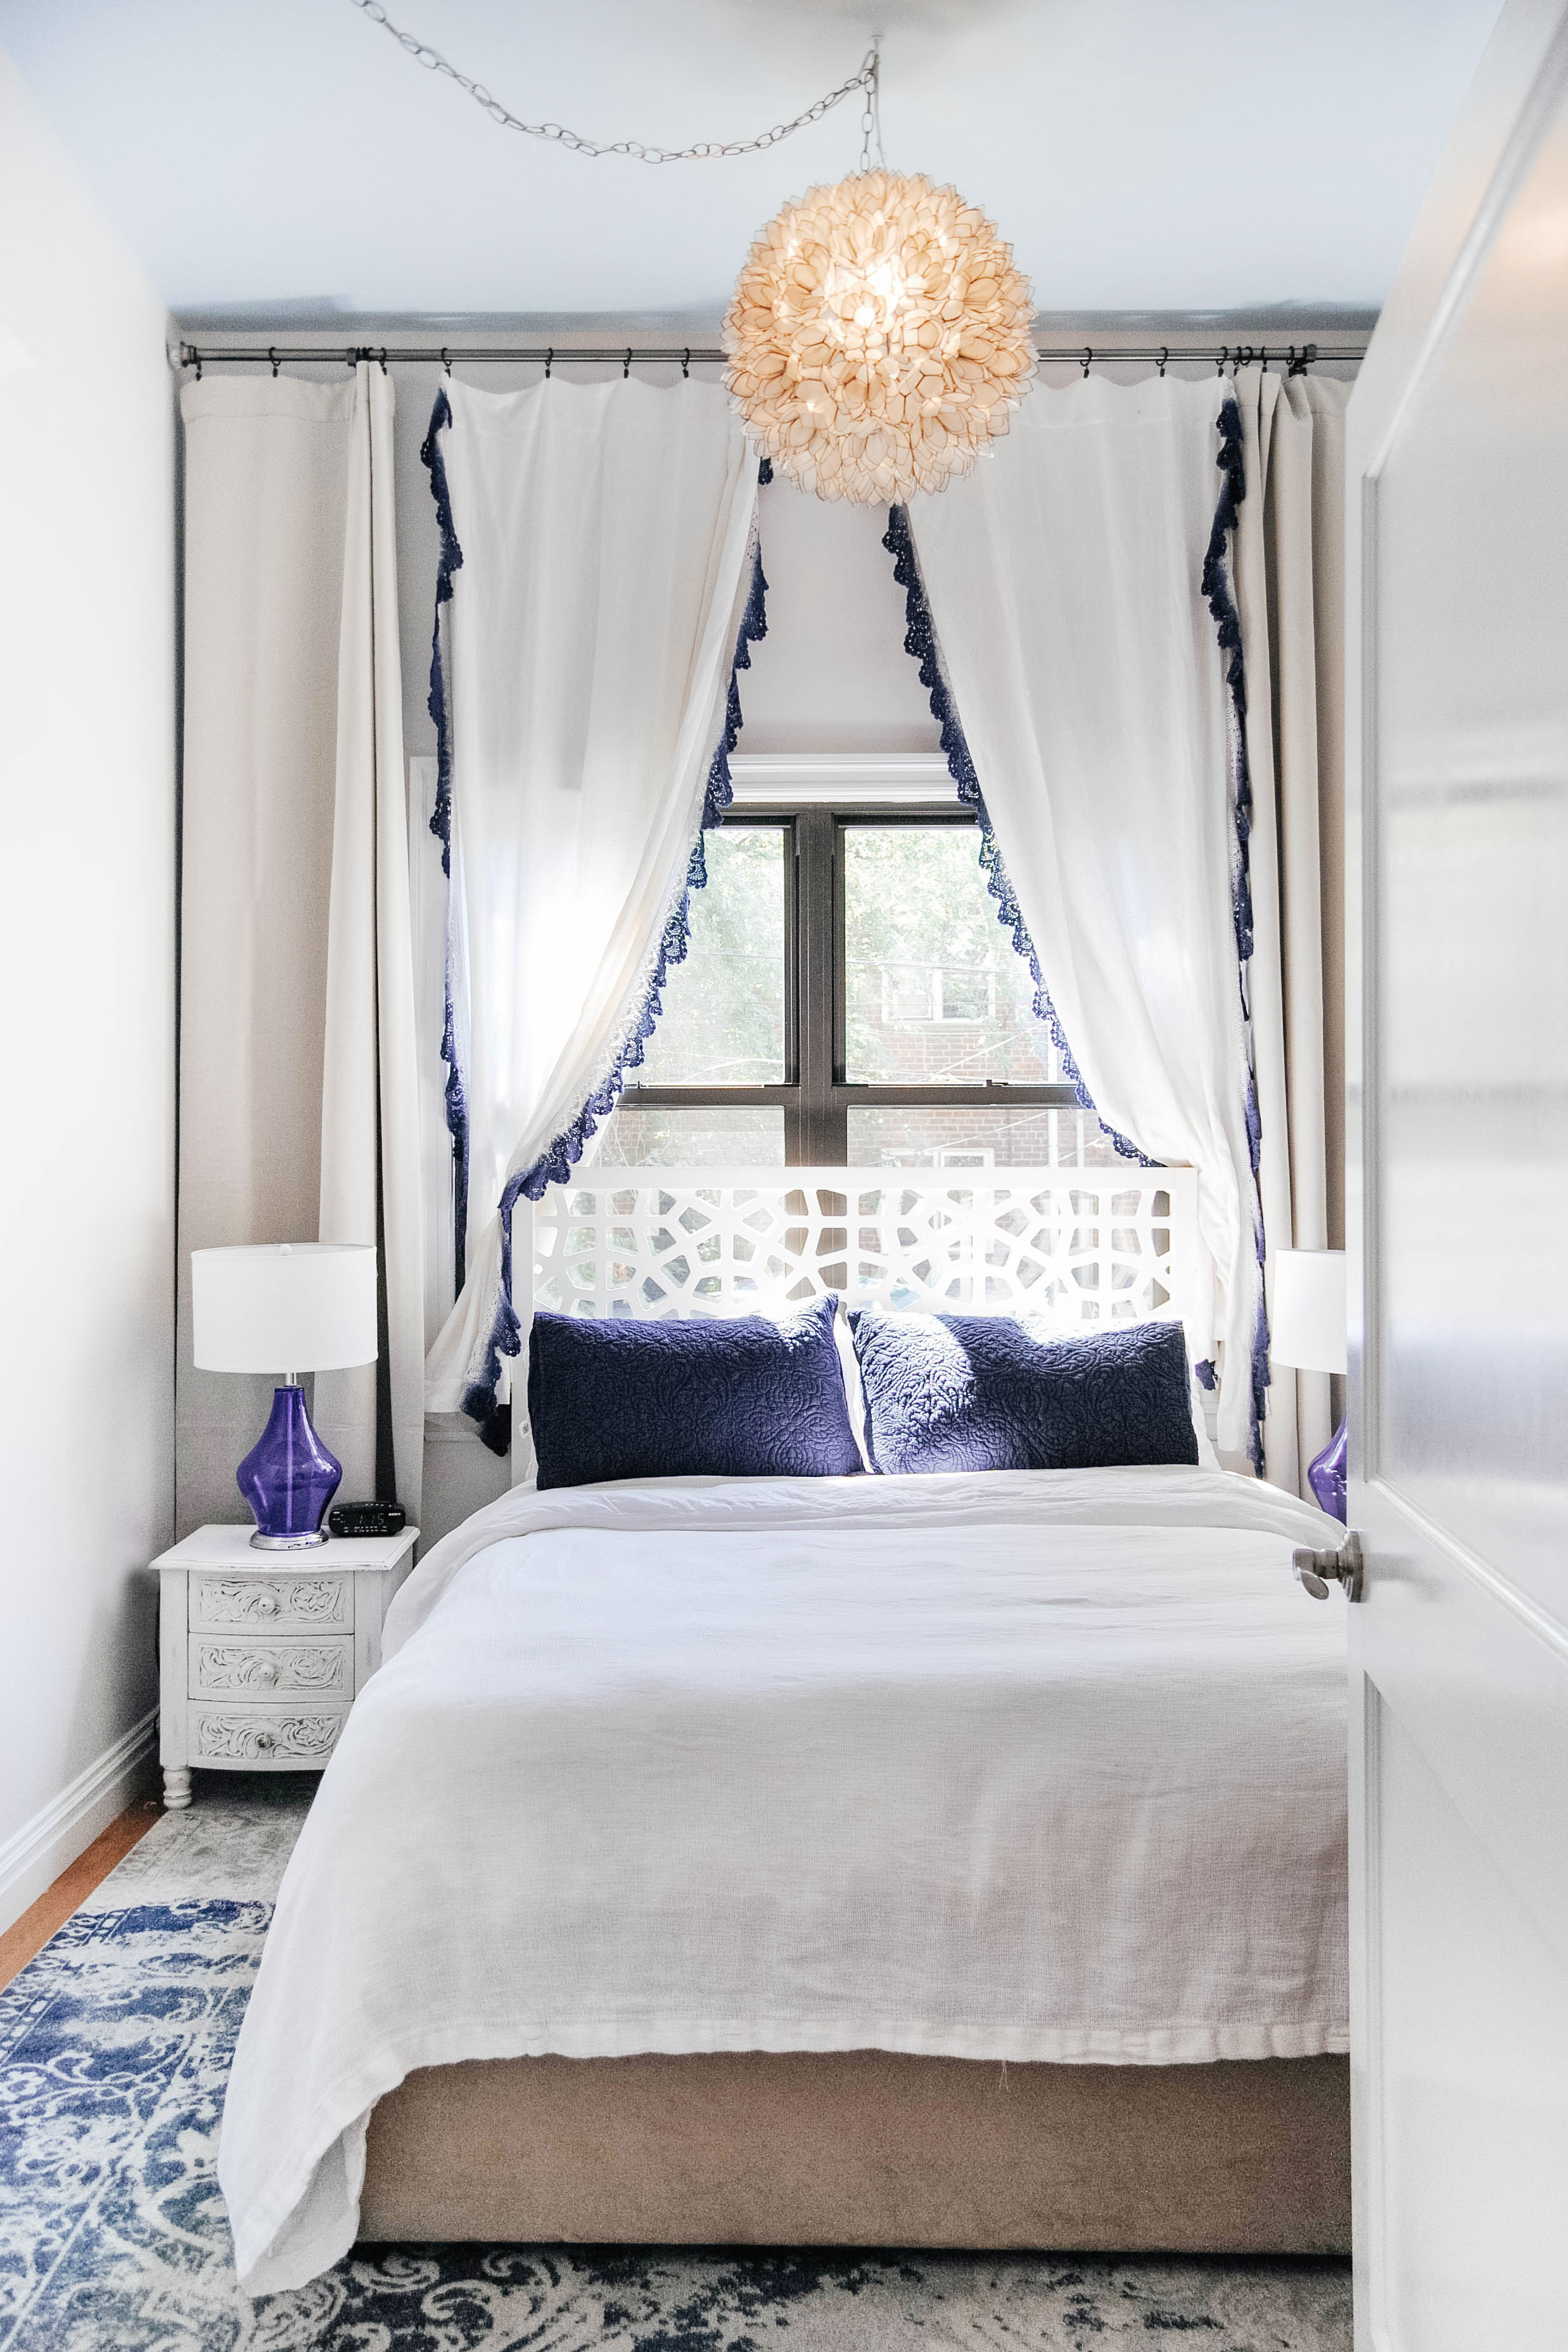 Bedroom with delicate window coverings